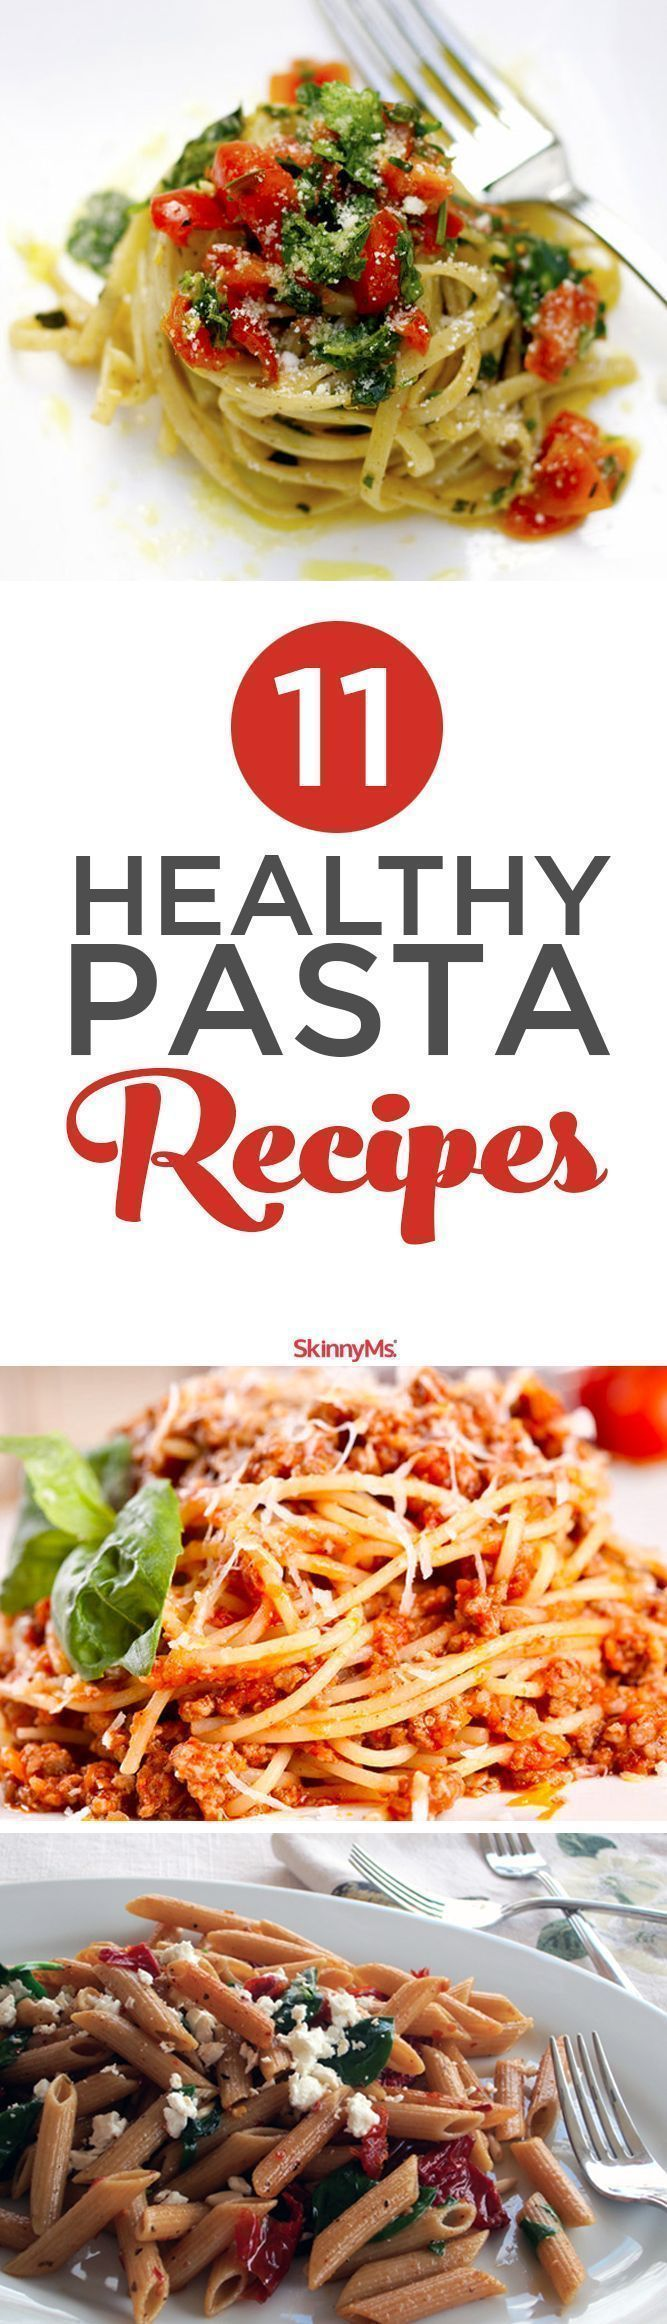 Dont take pasta-licious recipes off your menu when you want to lose weight and feel slim. With the right recipes, you can still sink your fork into a bowl of tasty pasta without the guilt and bad carbs. Add these 11 healthy pasta recipes to your weight l